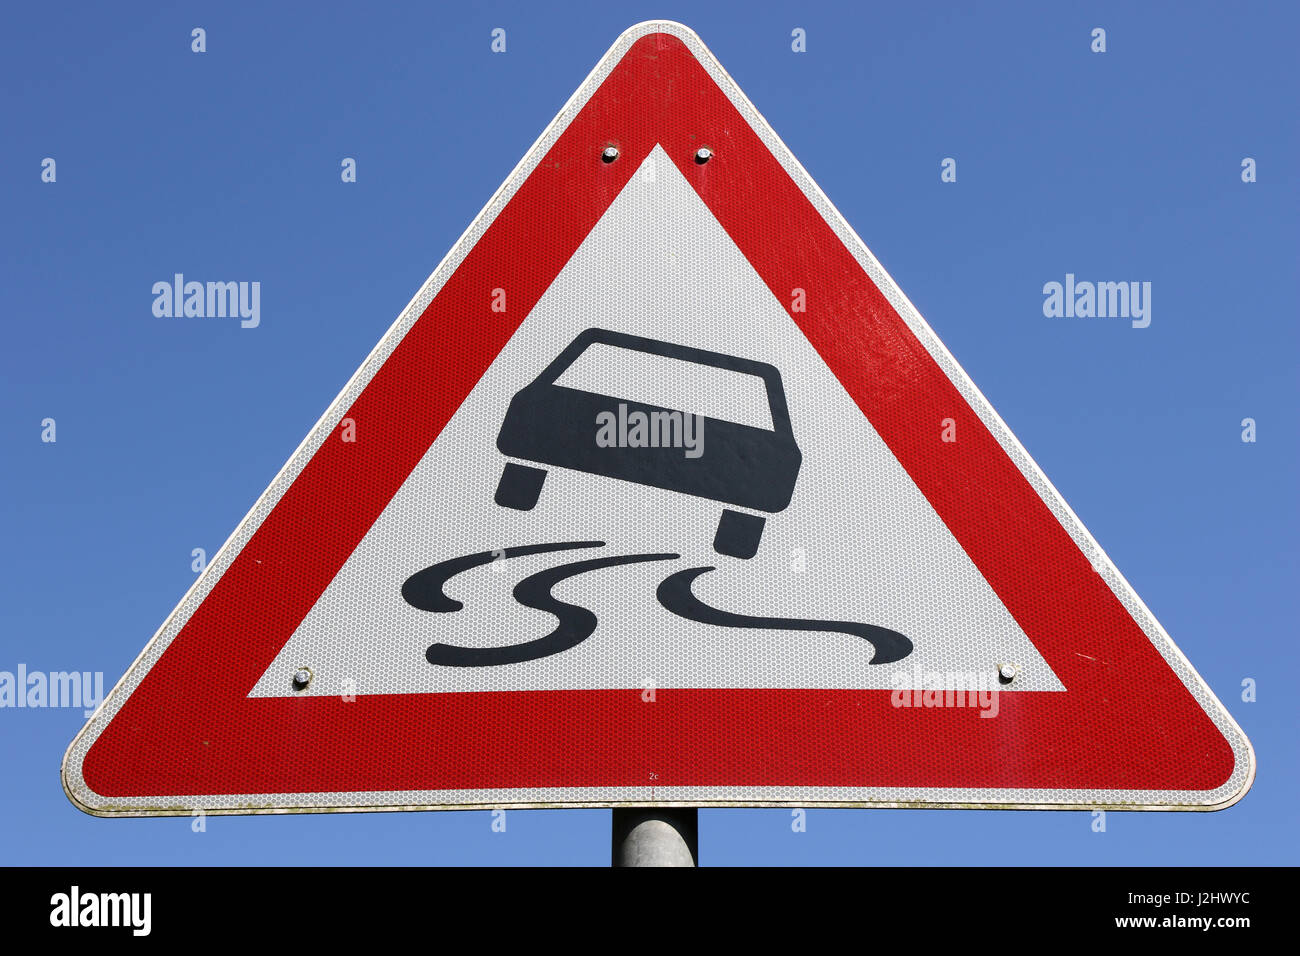 German road sign: slippery road - Stock Image